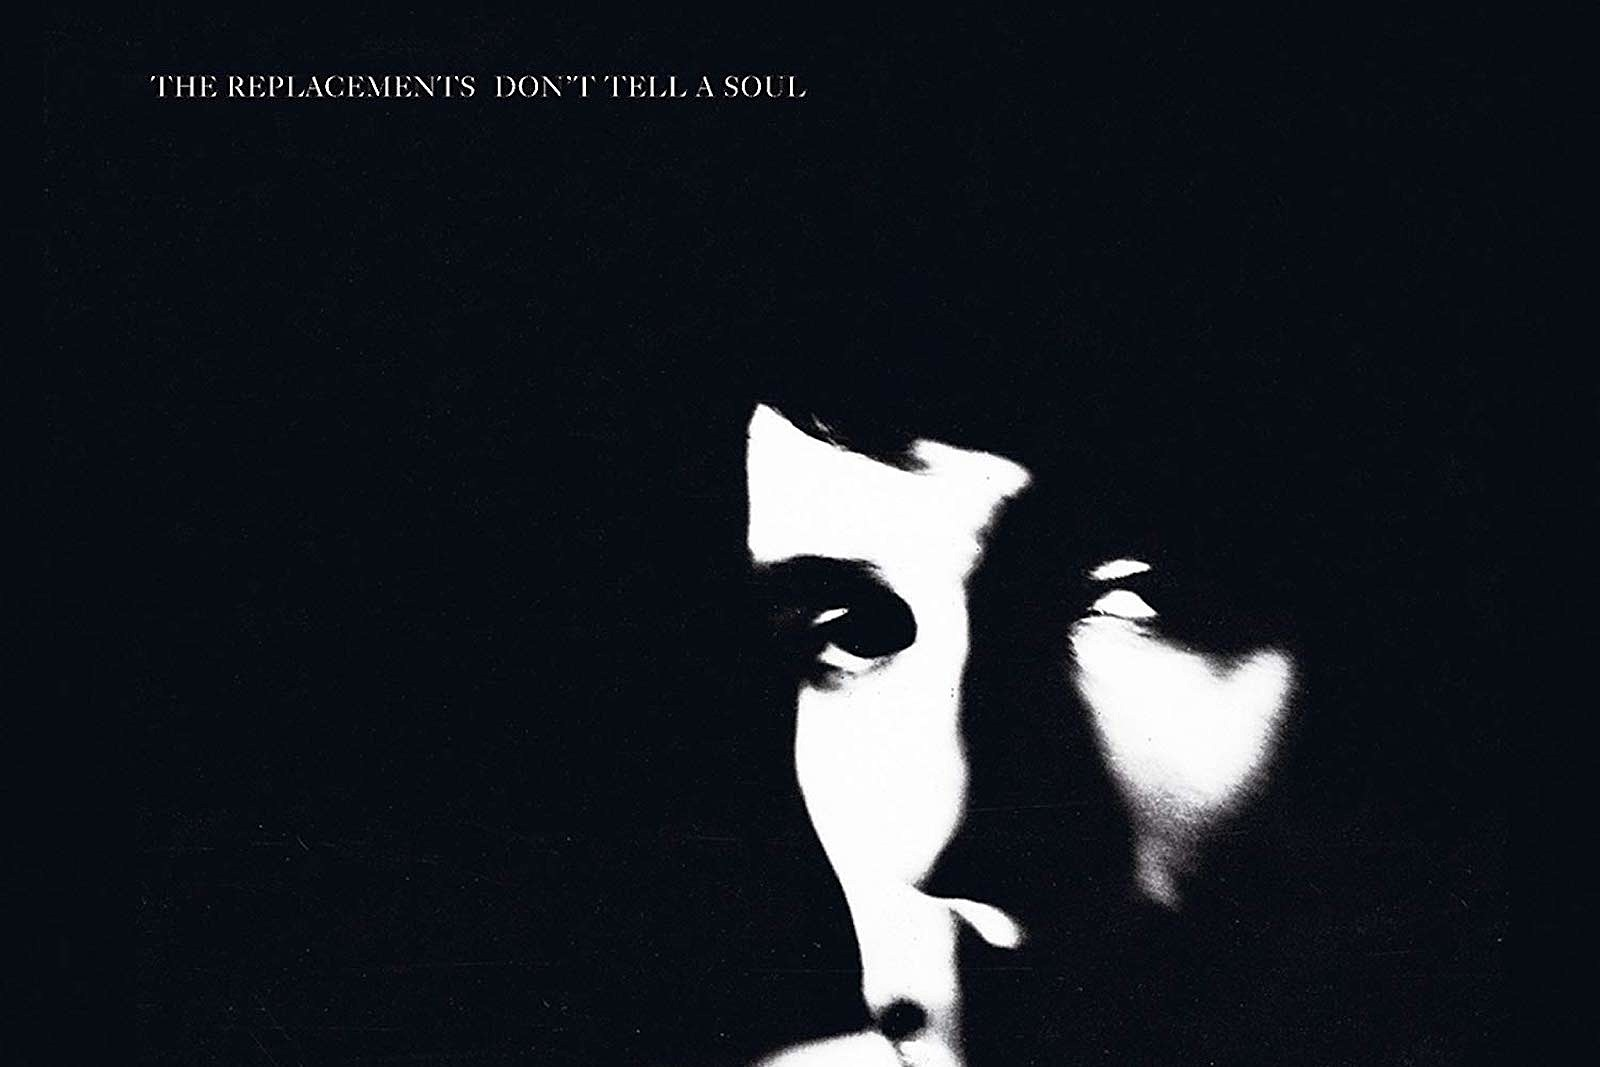 Replacements Remix 'Don't Tell a Soul' for Expanded Box